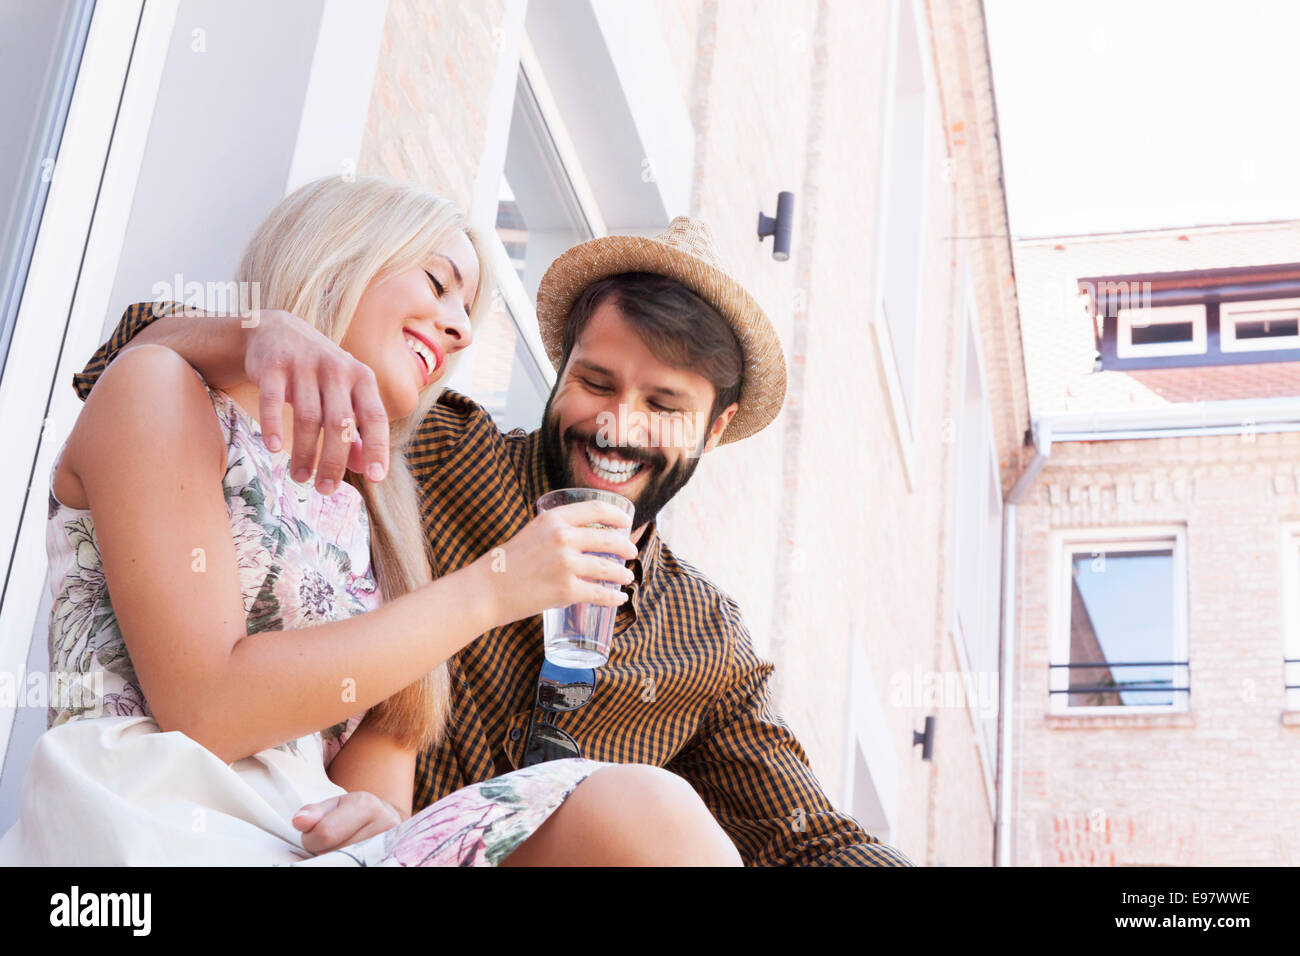 Happy young couple drinking a mineral water together - Stock Image